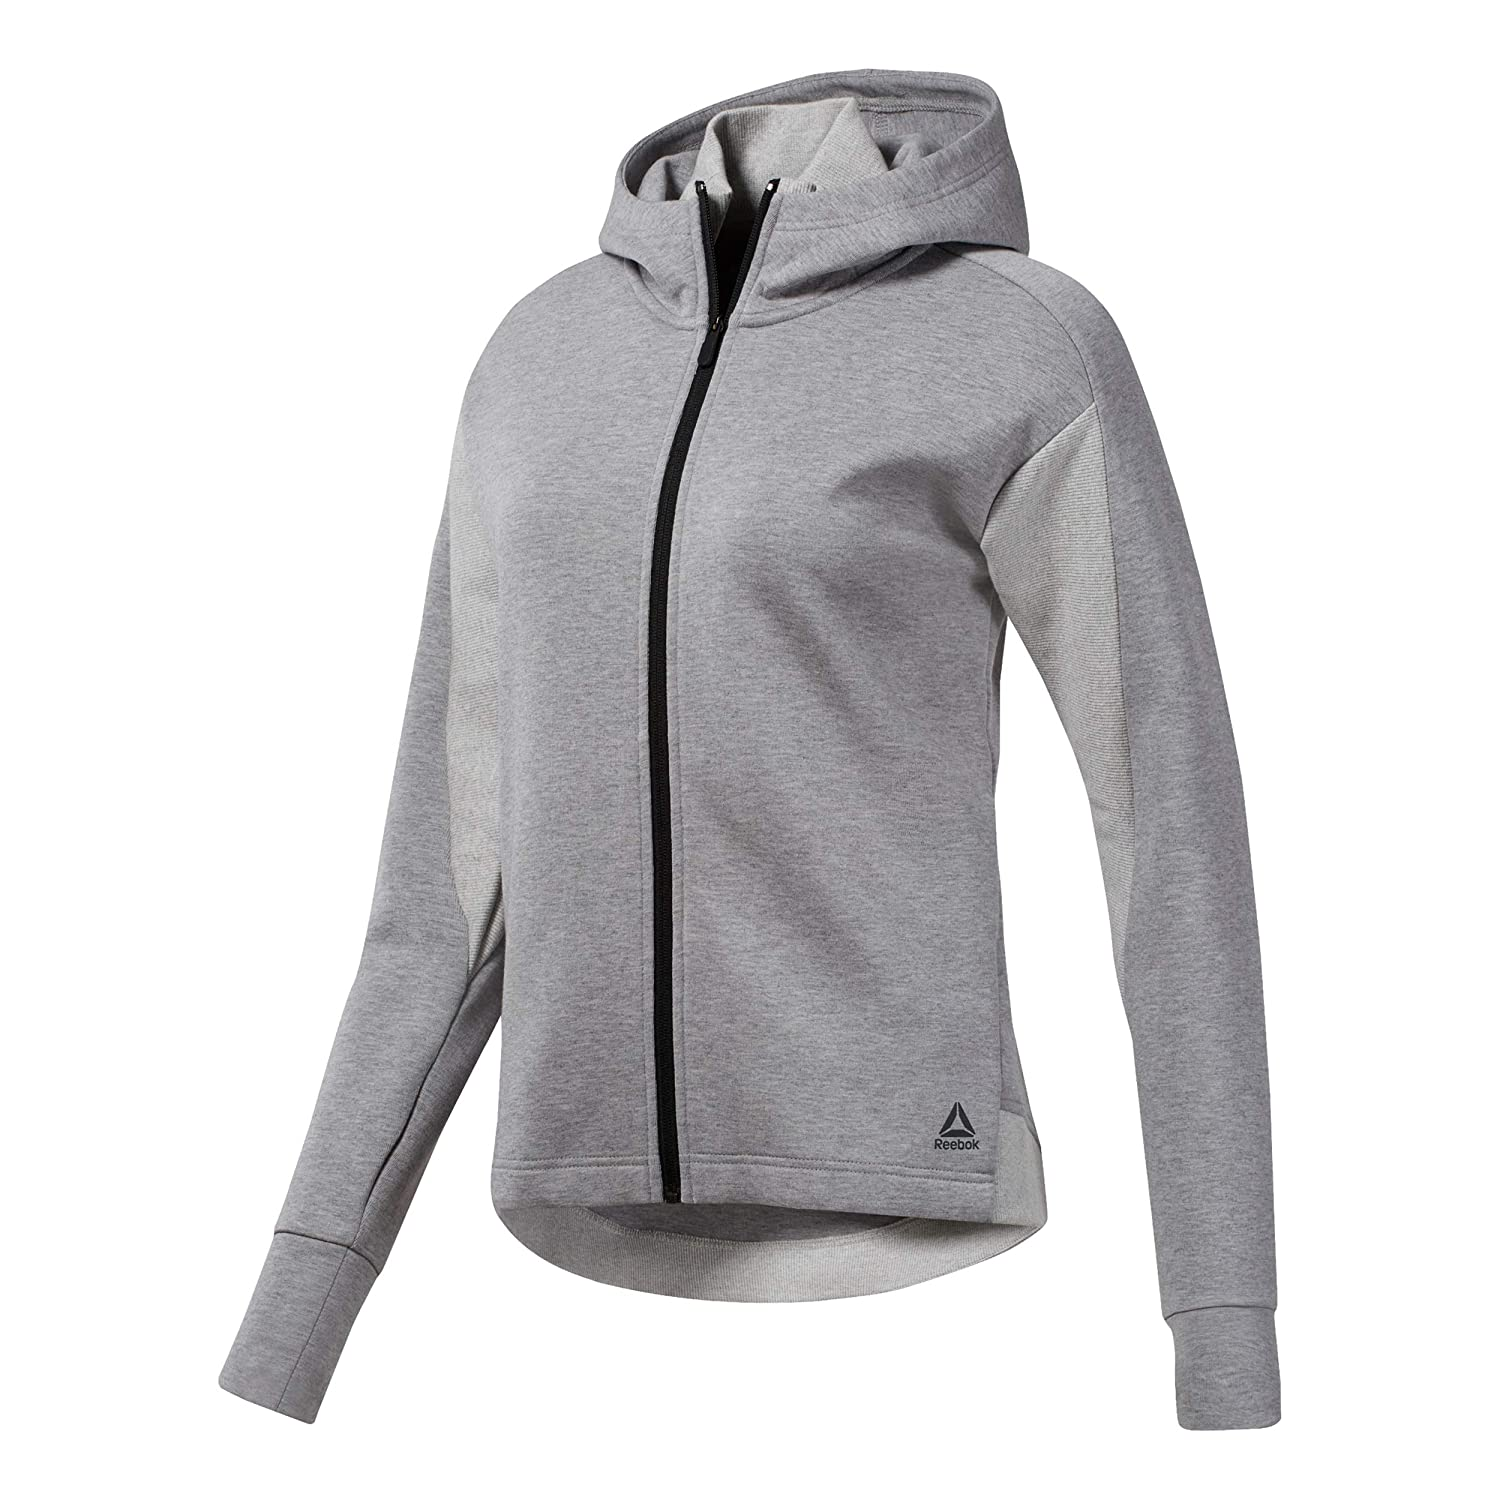 e0c407fba0 Reebok Women One Series Cotton Full-Zip Hoodie Women Running Clothes ...